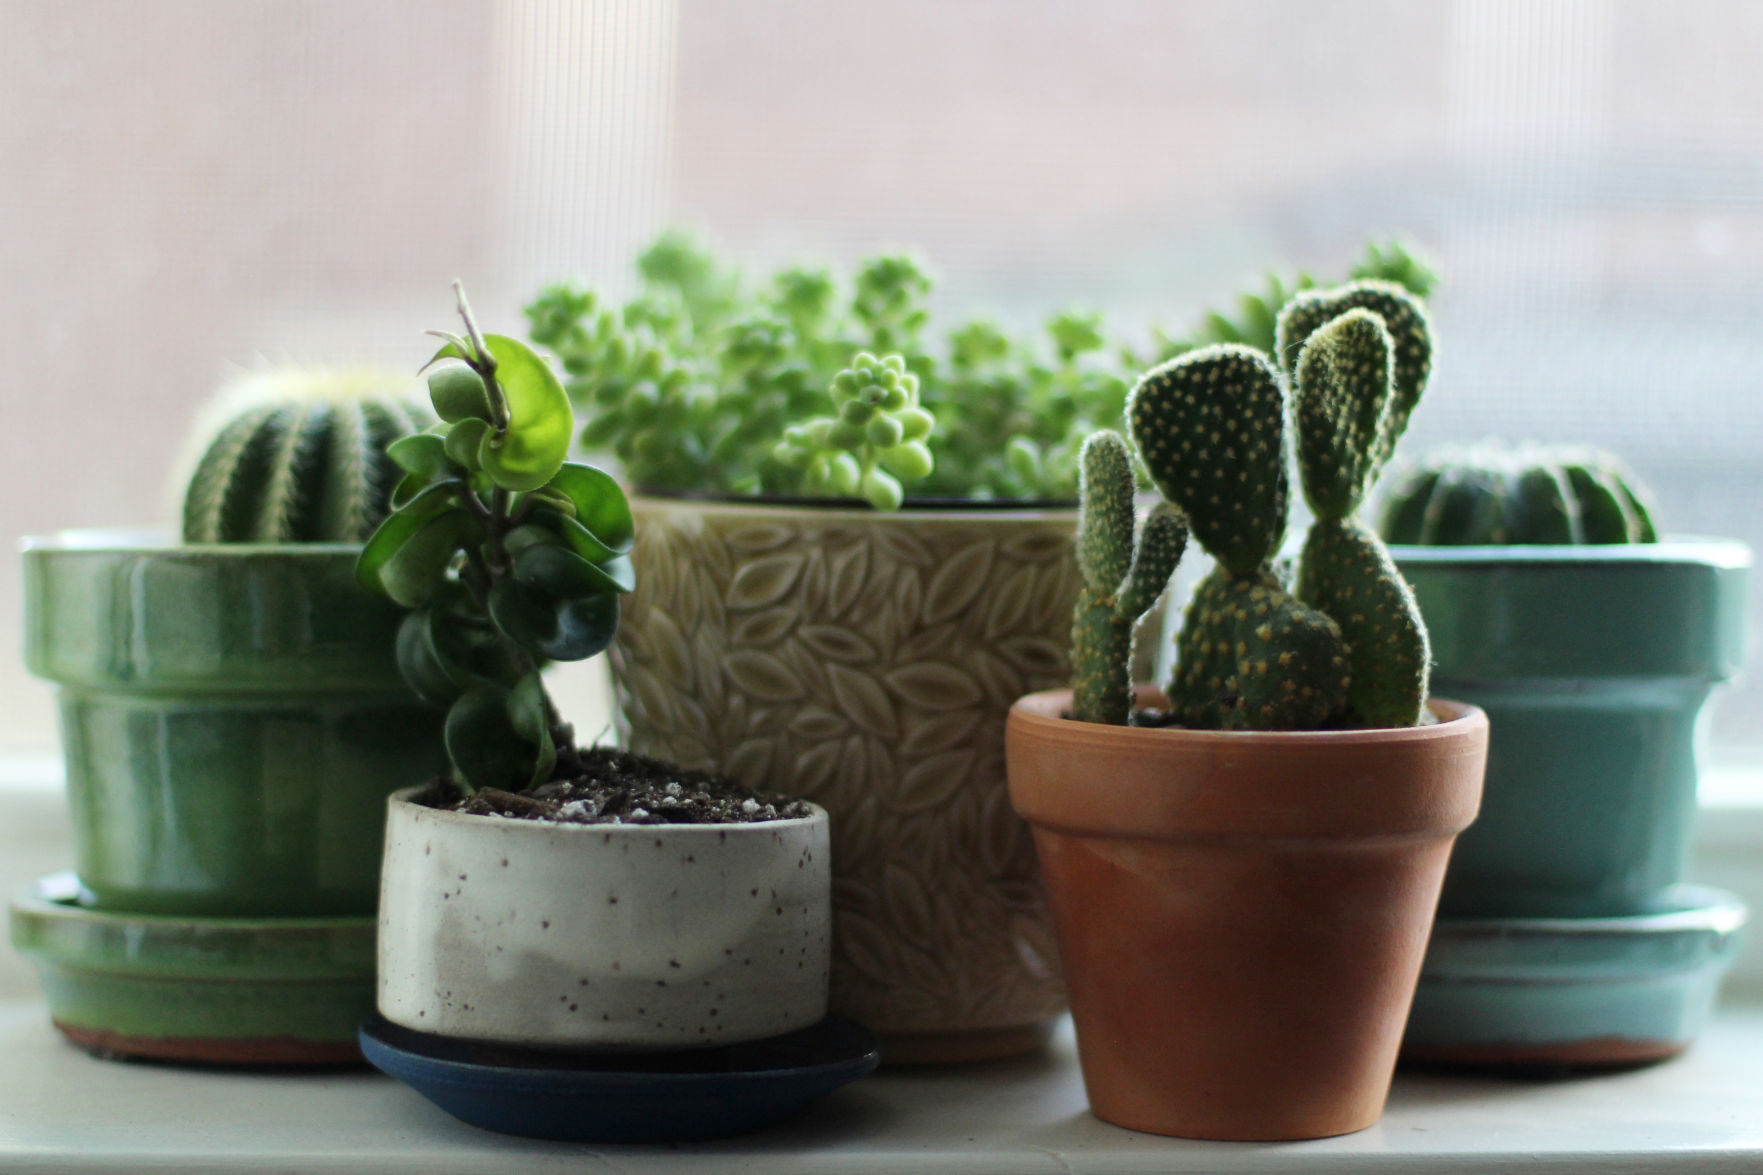 Opinion: In a time of uncertainty, my plants remain a constant